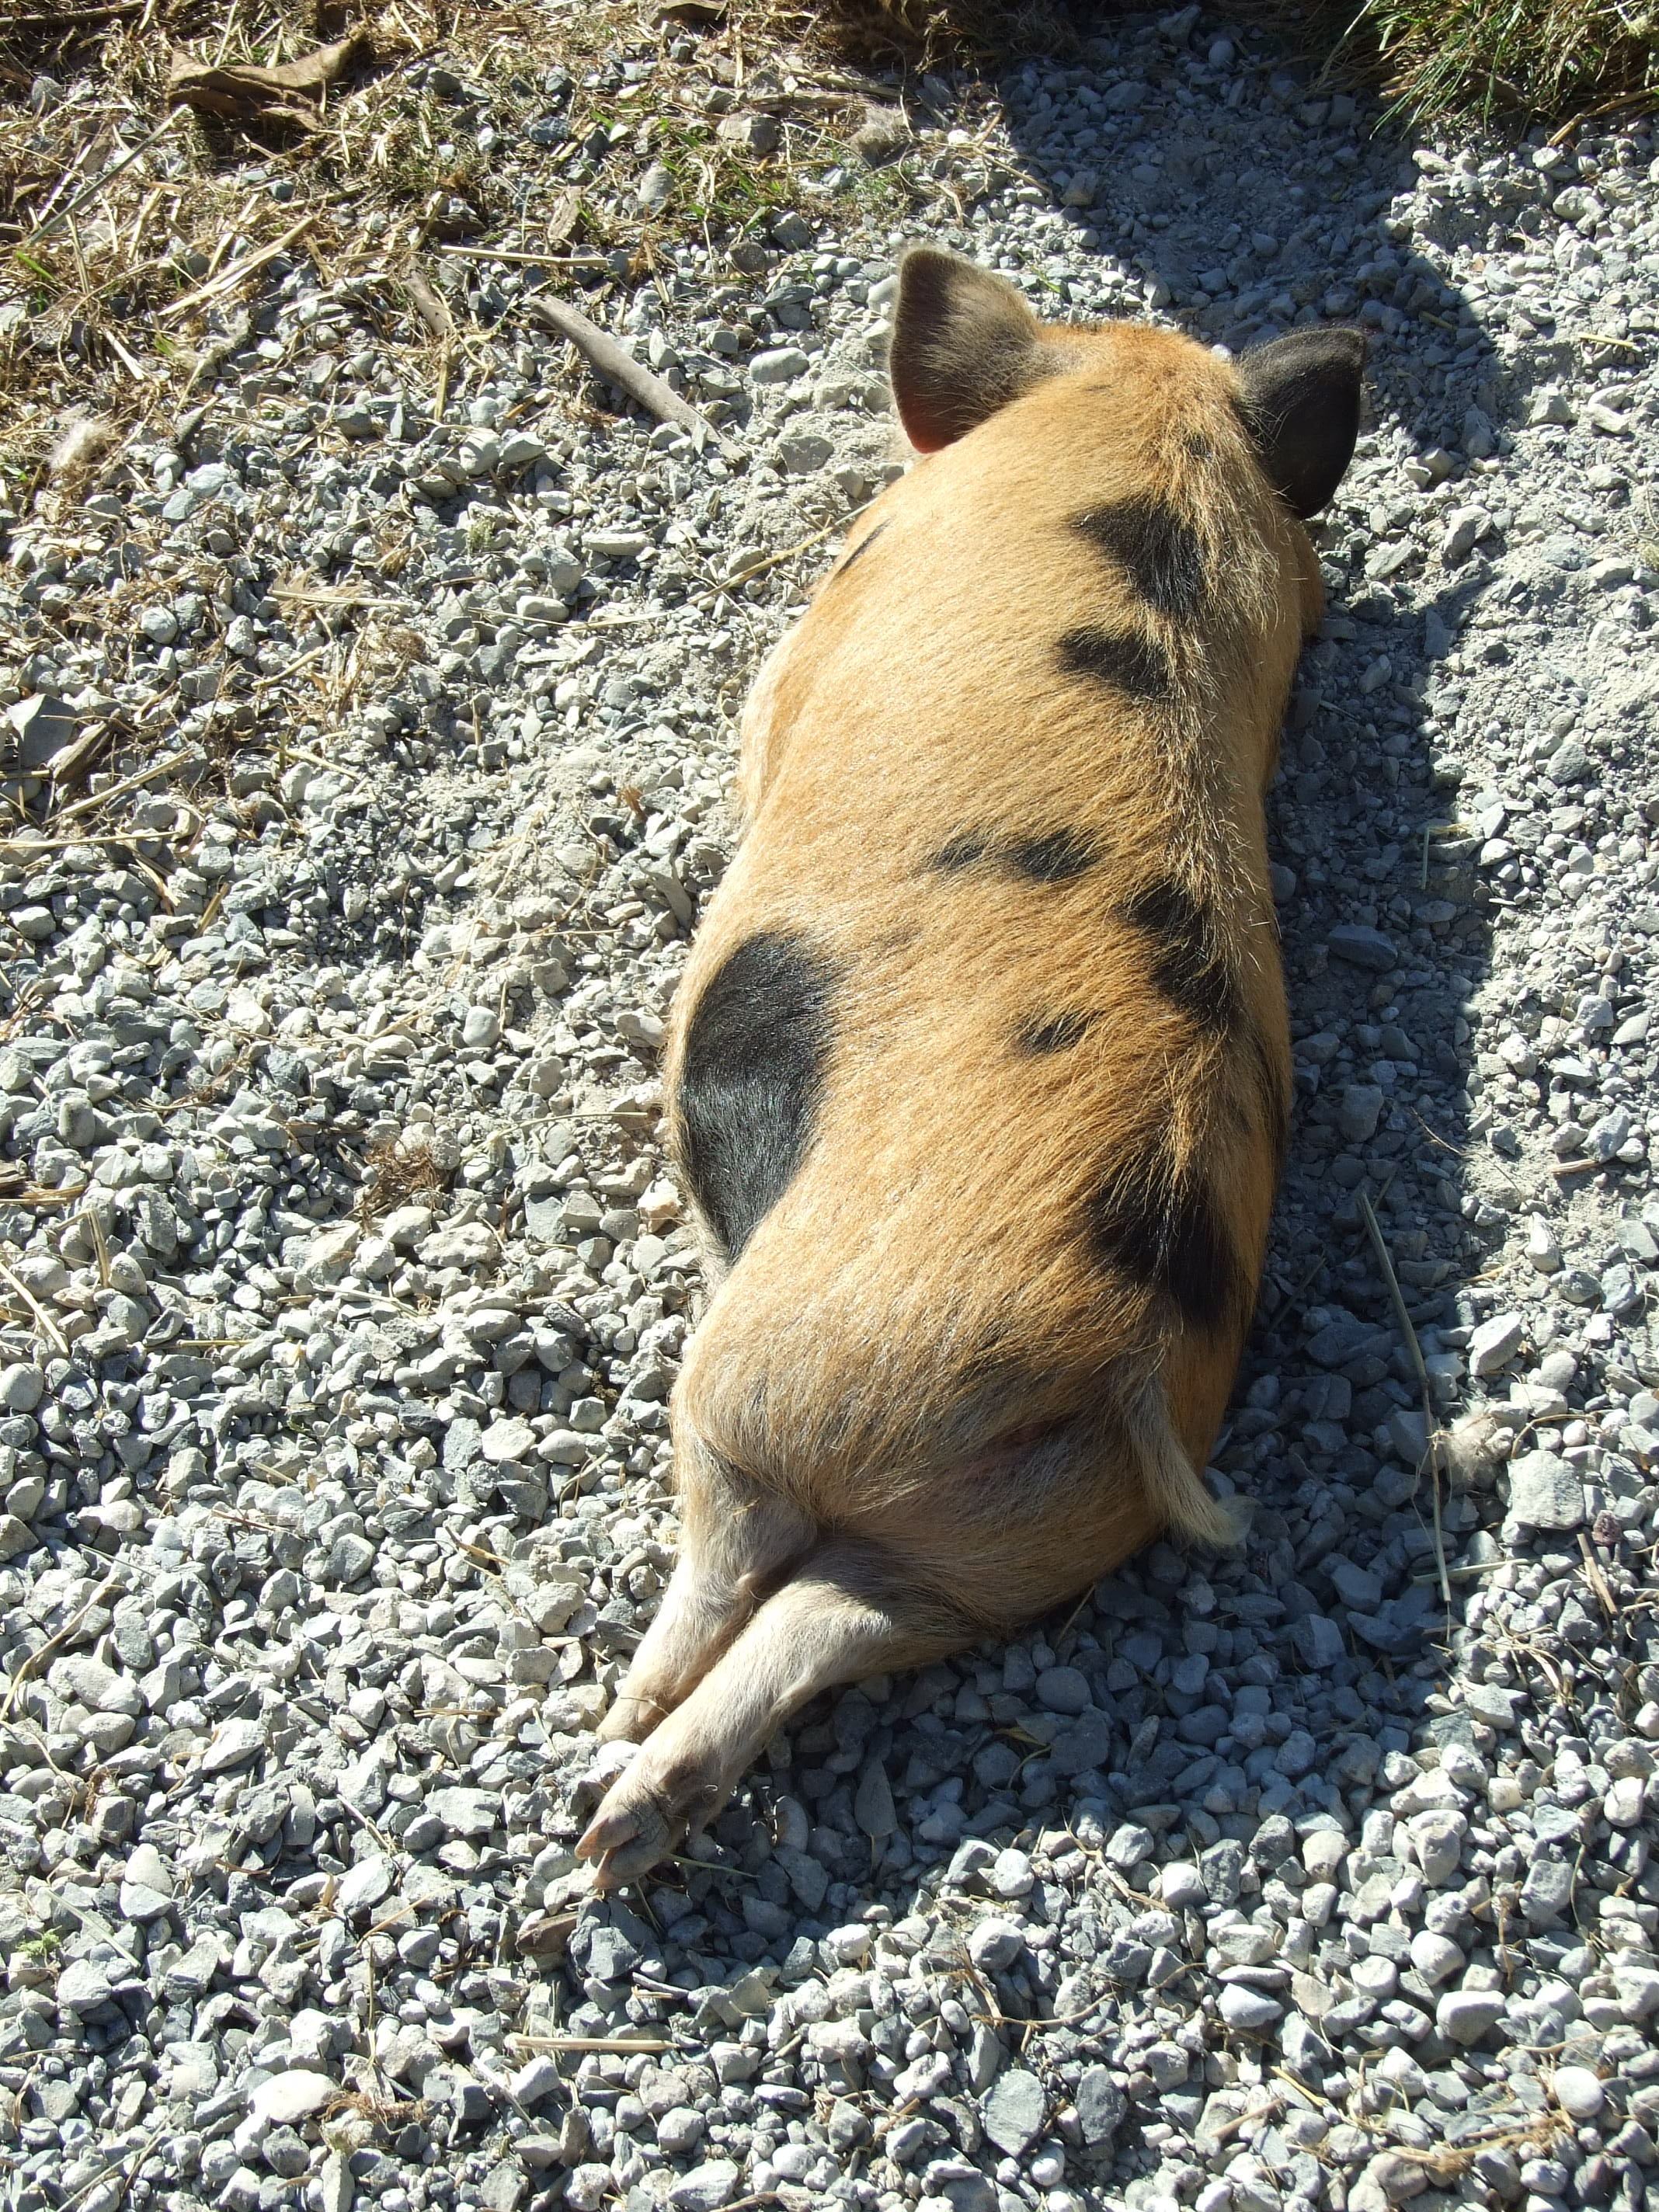 The Kune's Can! – Just Another Weed Patch Farm